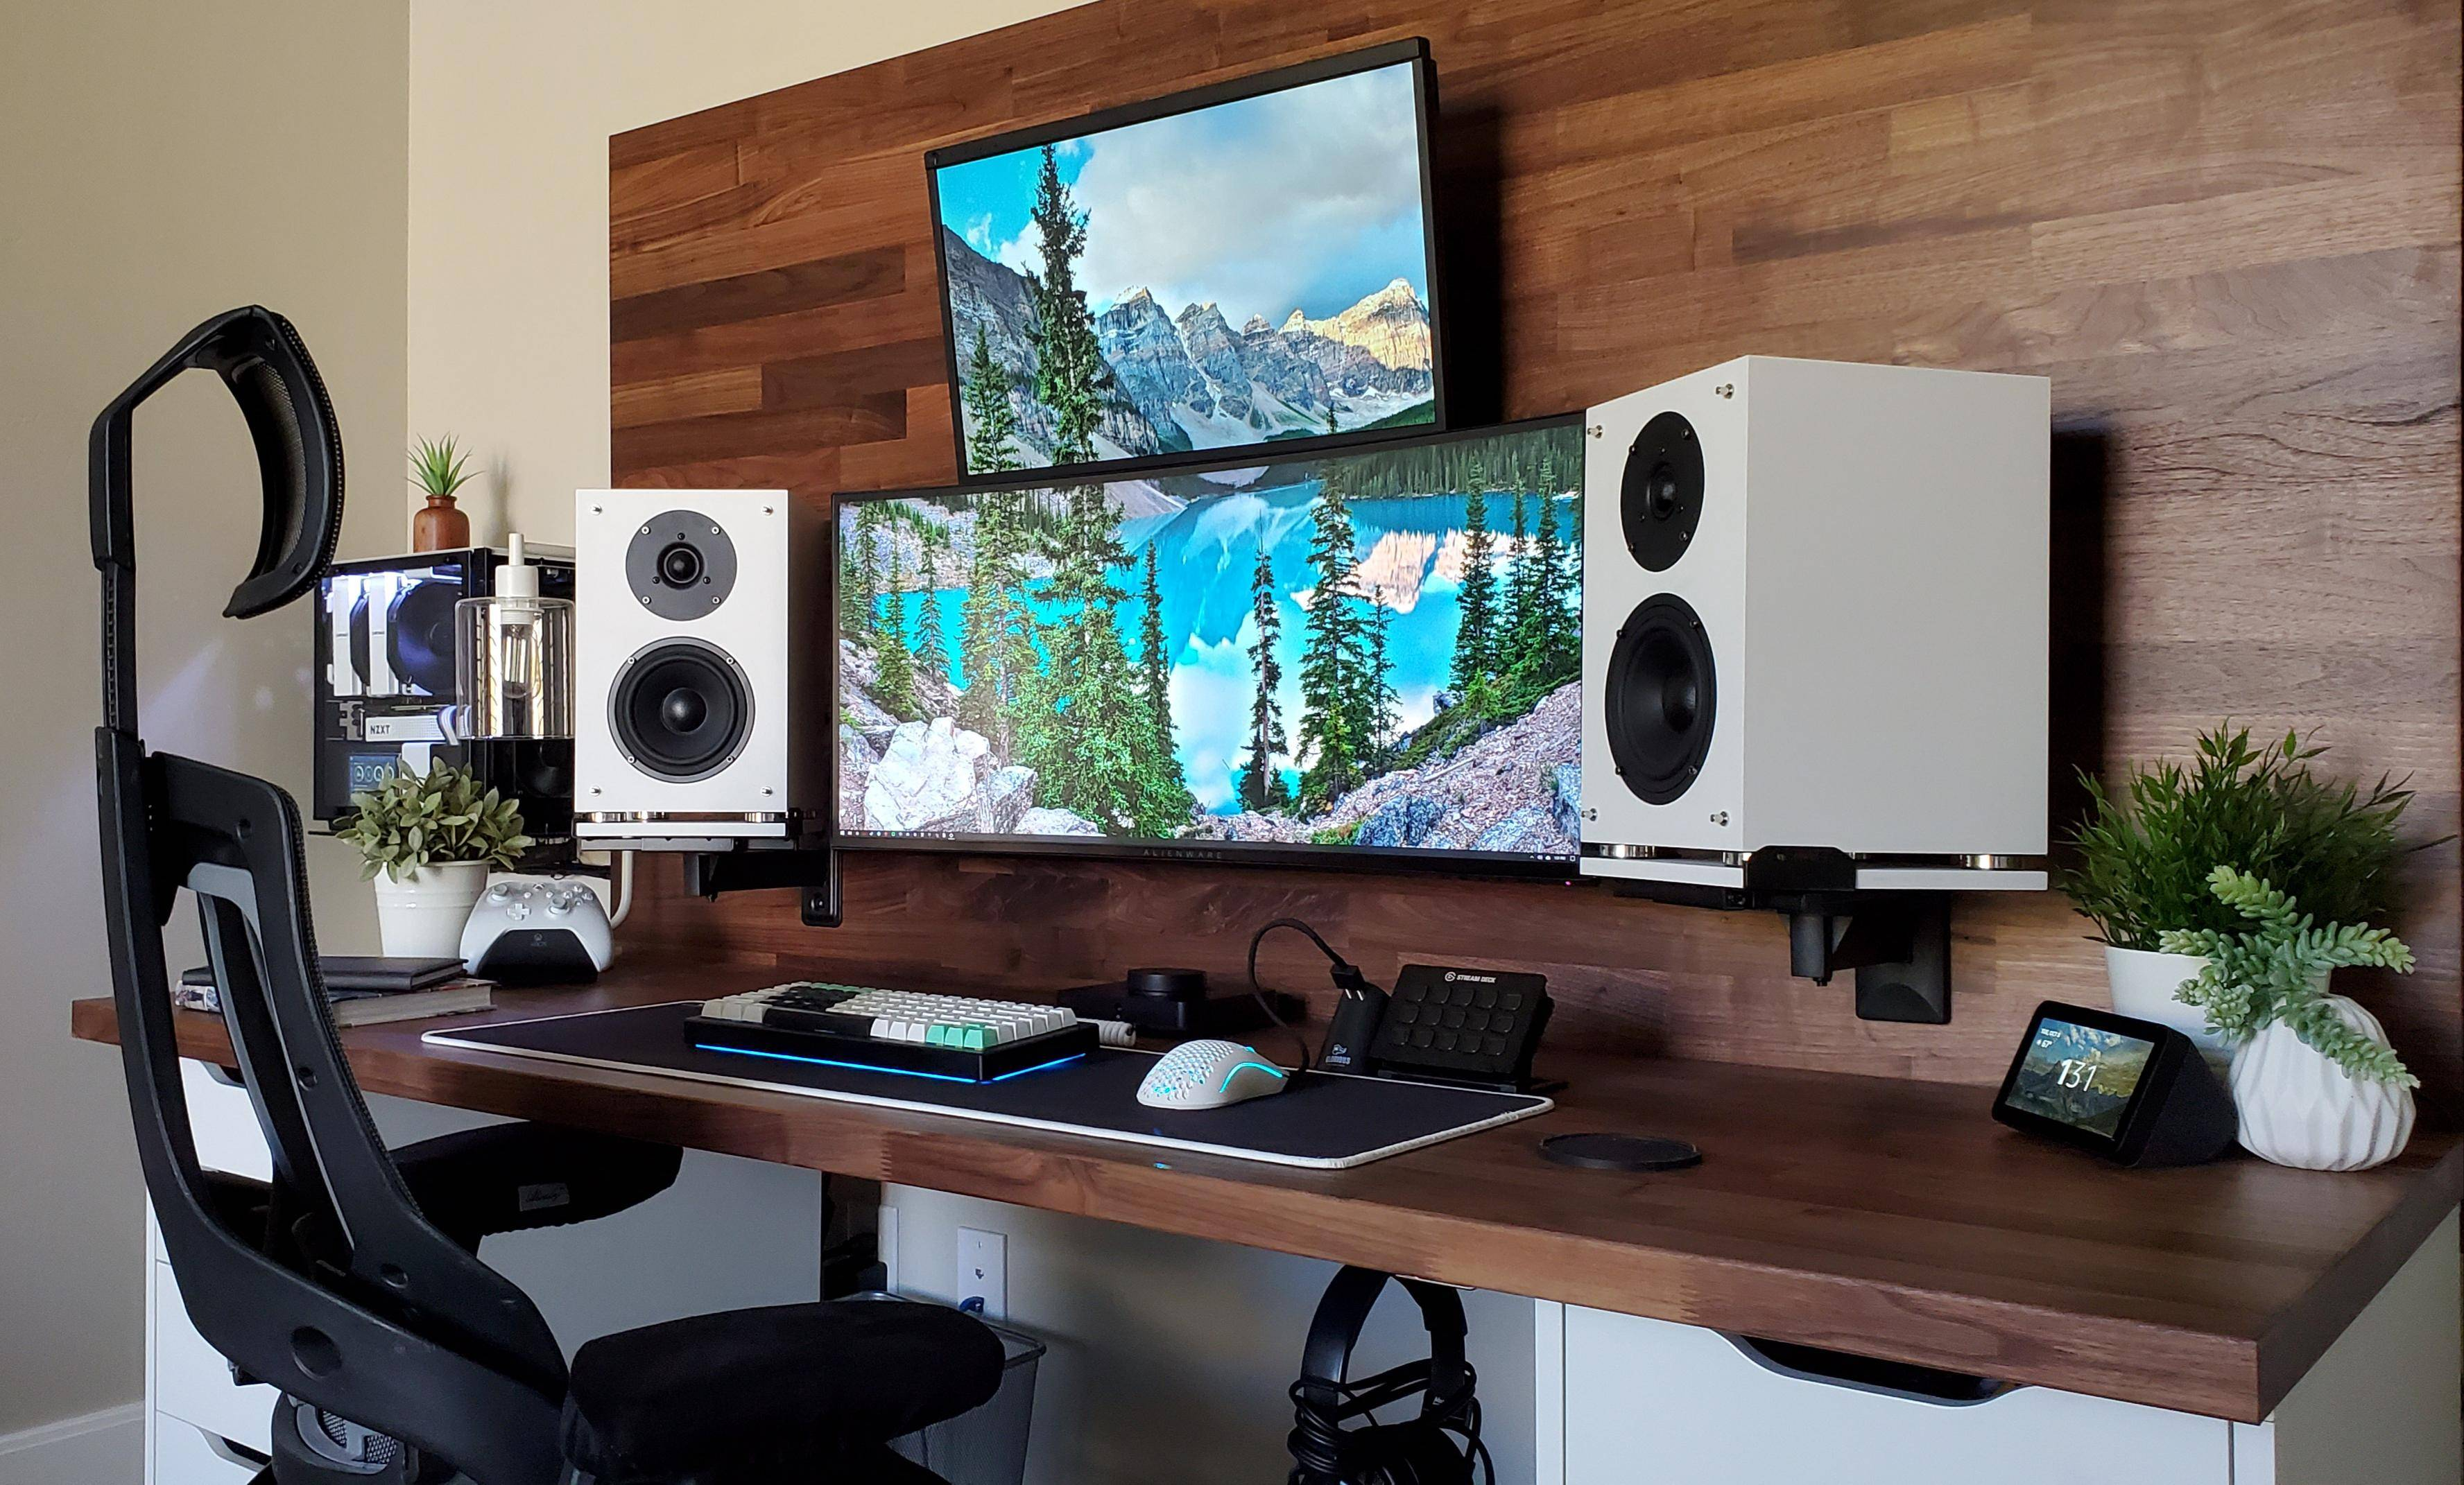 """ChesterWang's Setup - """"Built my first budget PC 5 years ago.. it's a slippery slope."""" 